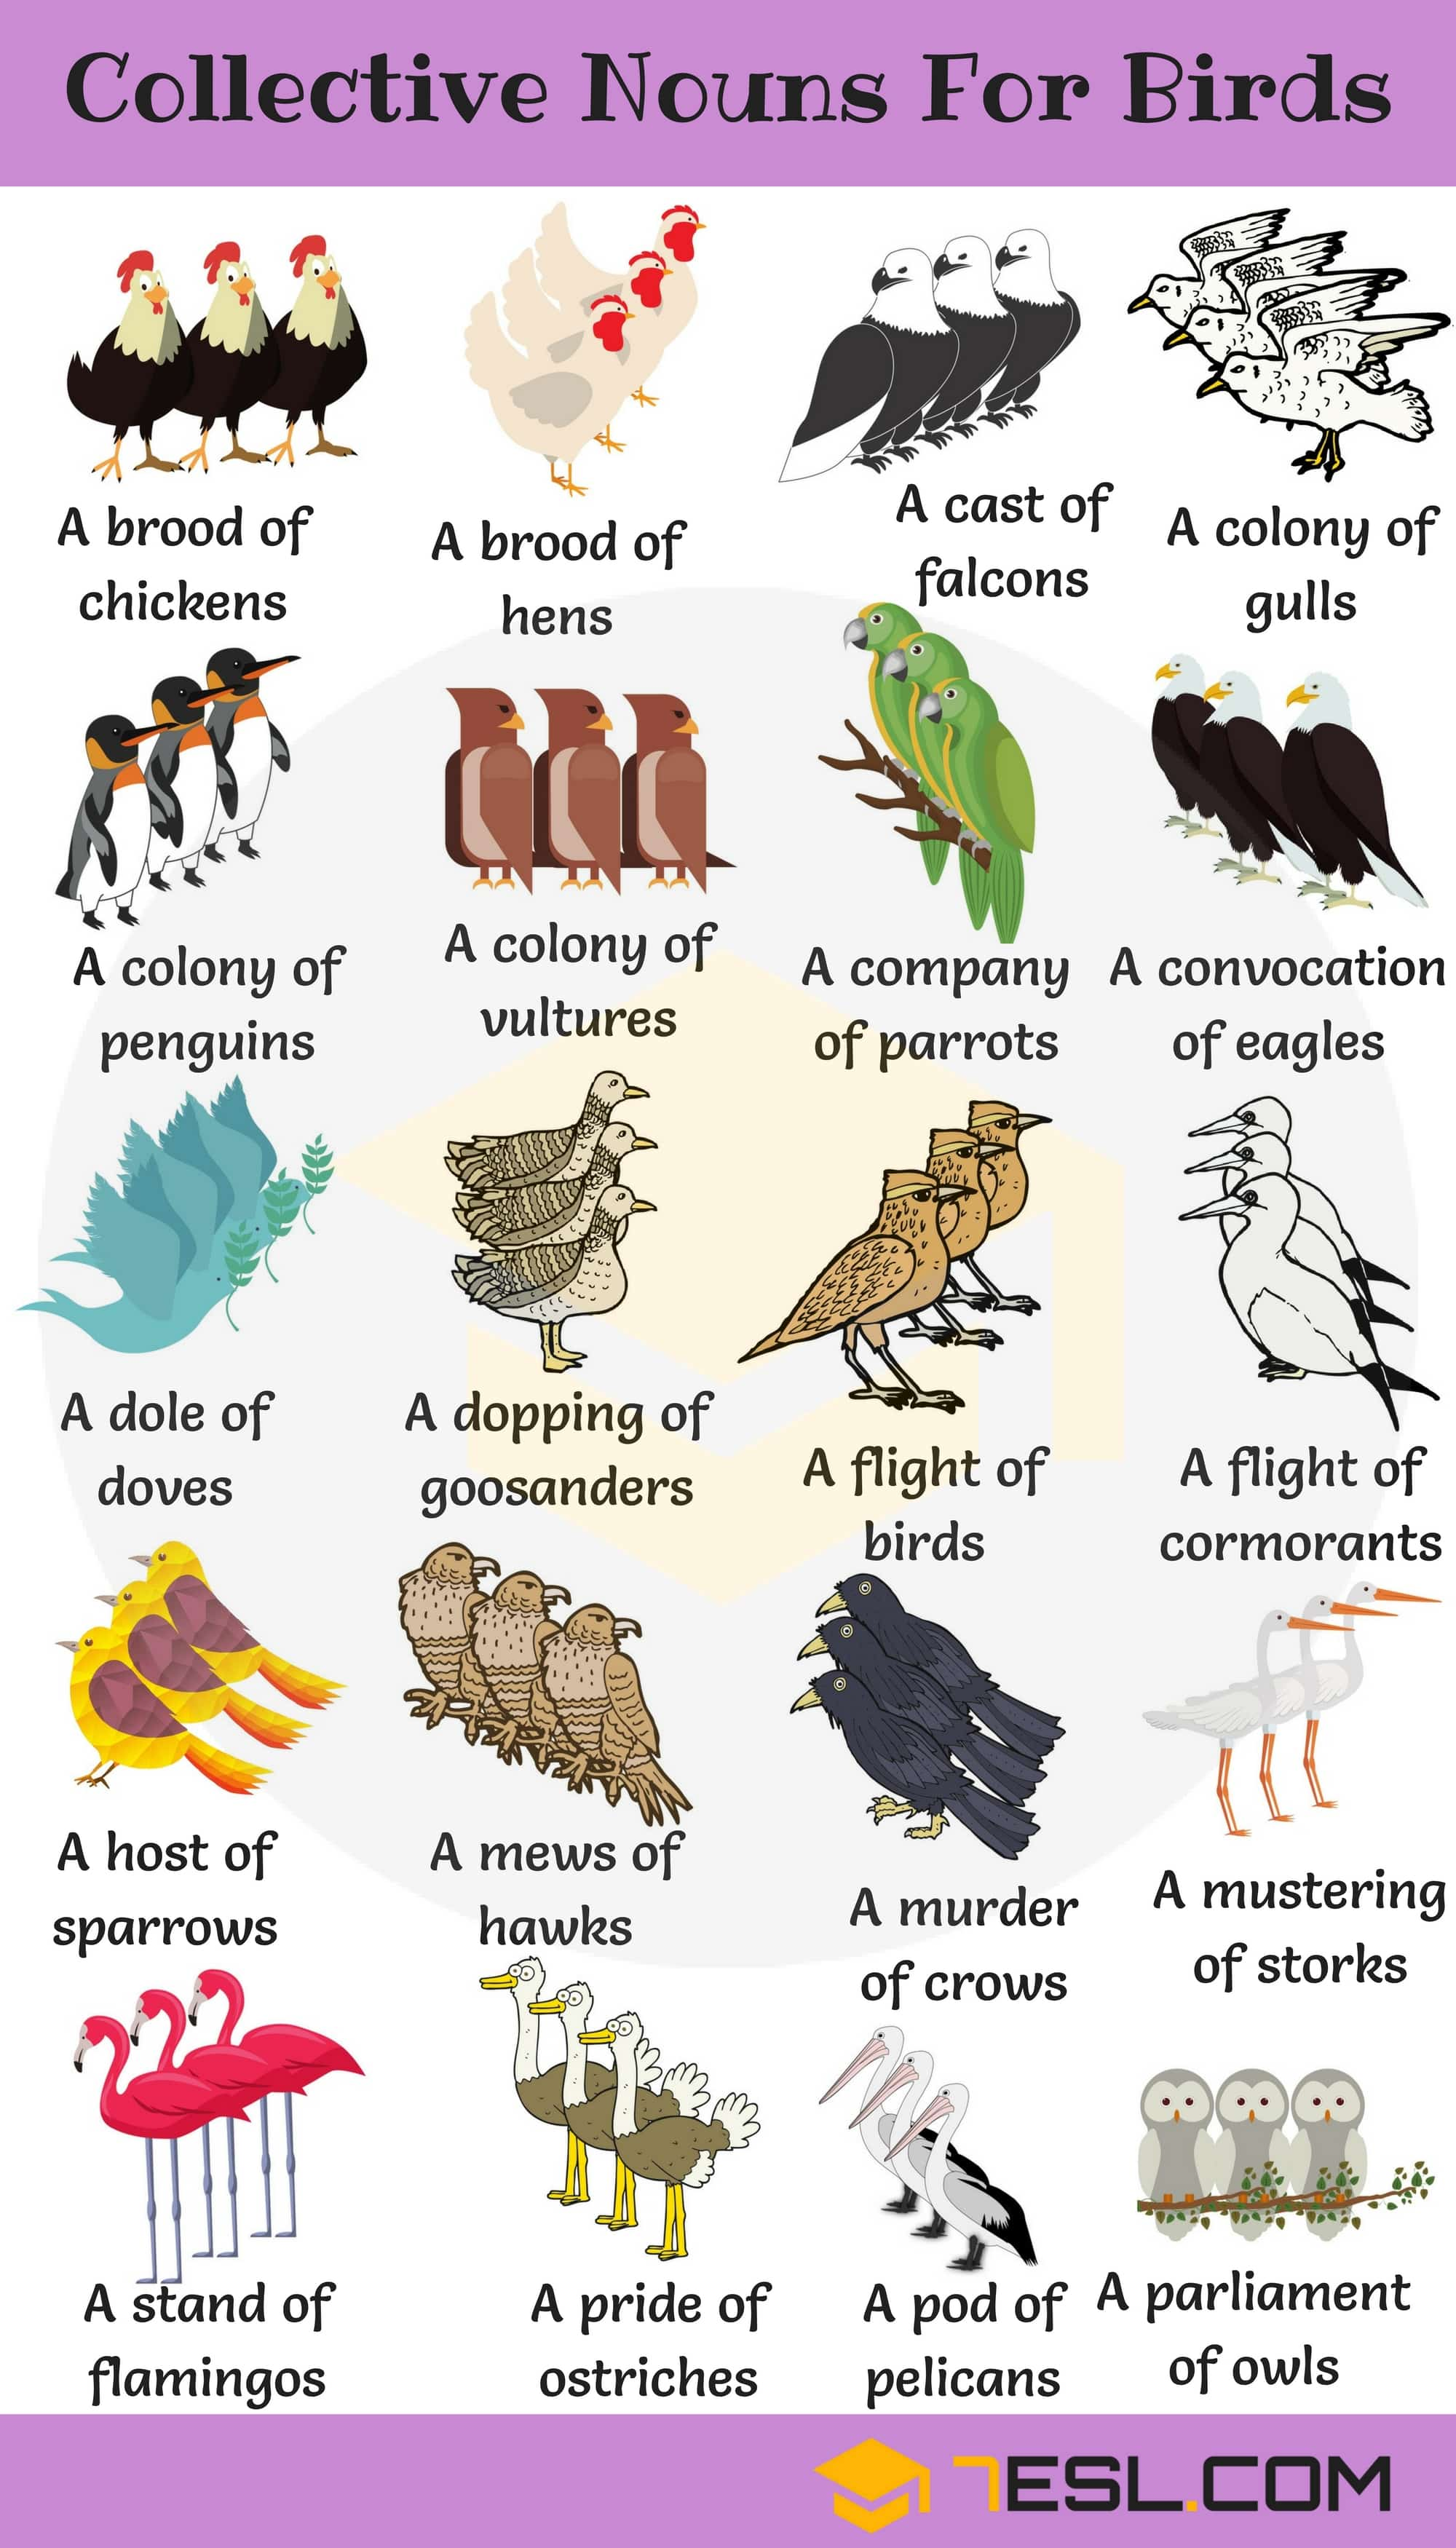 Names of Animal Groups